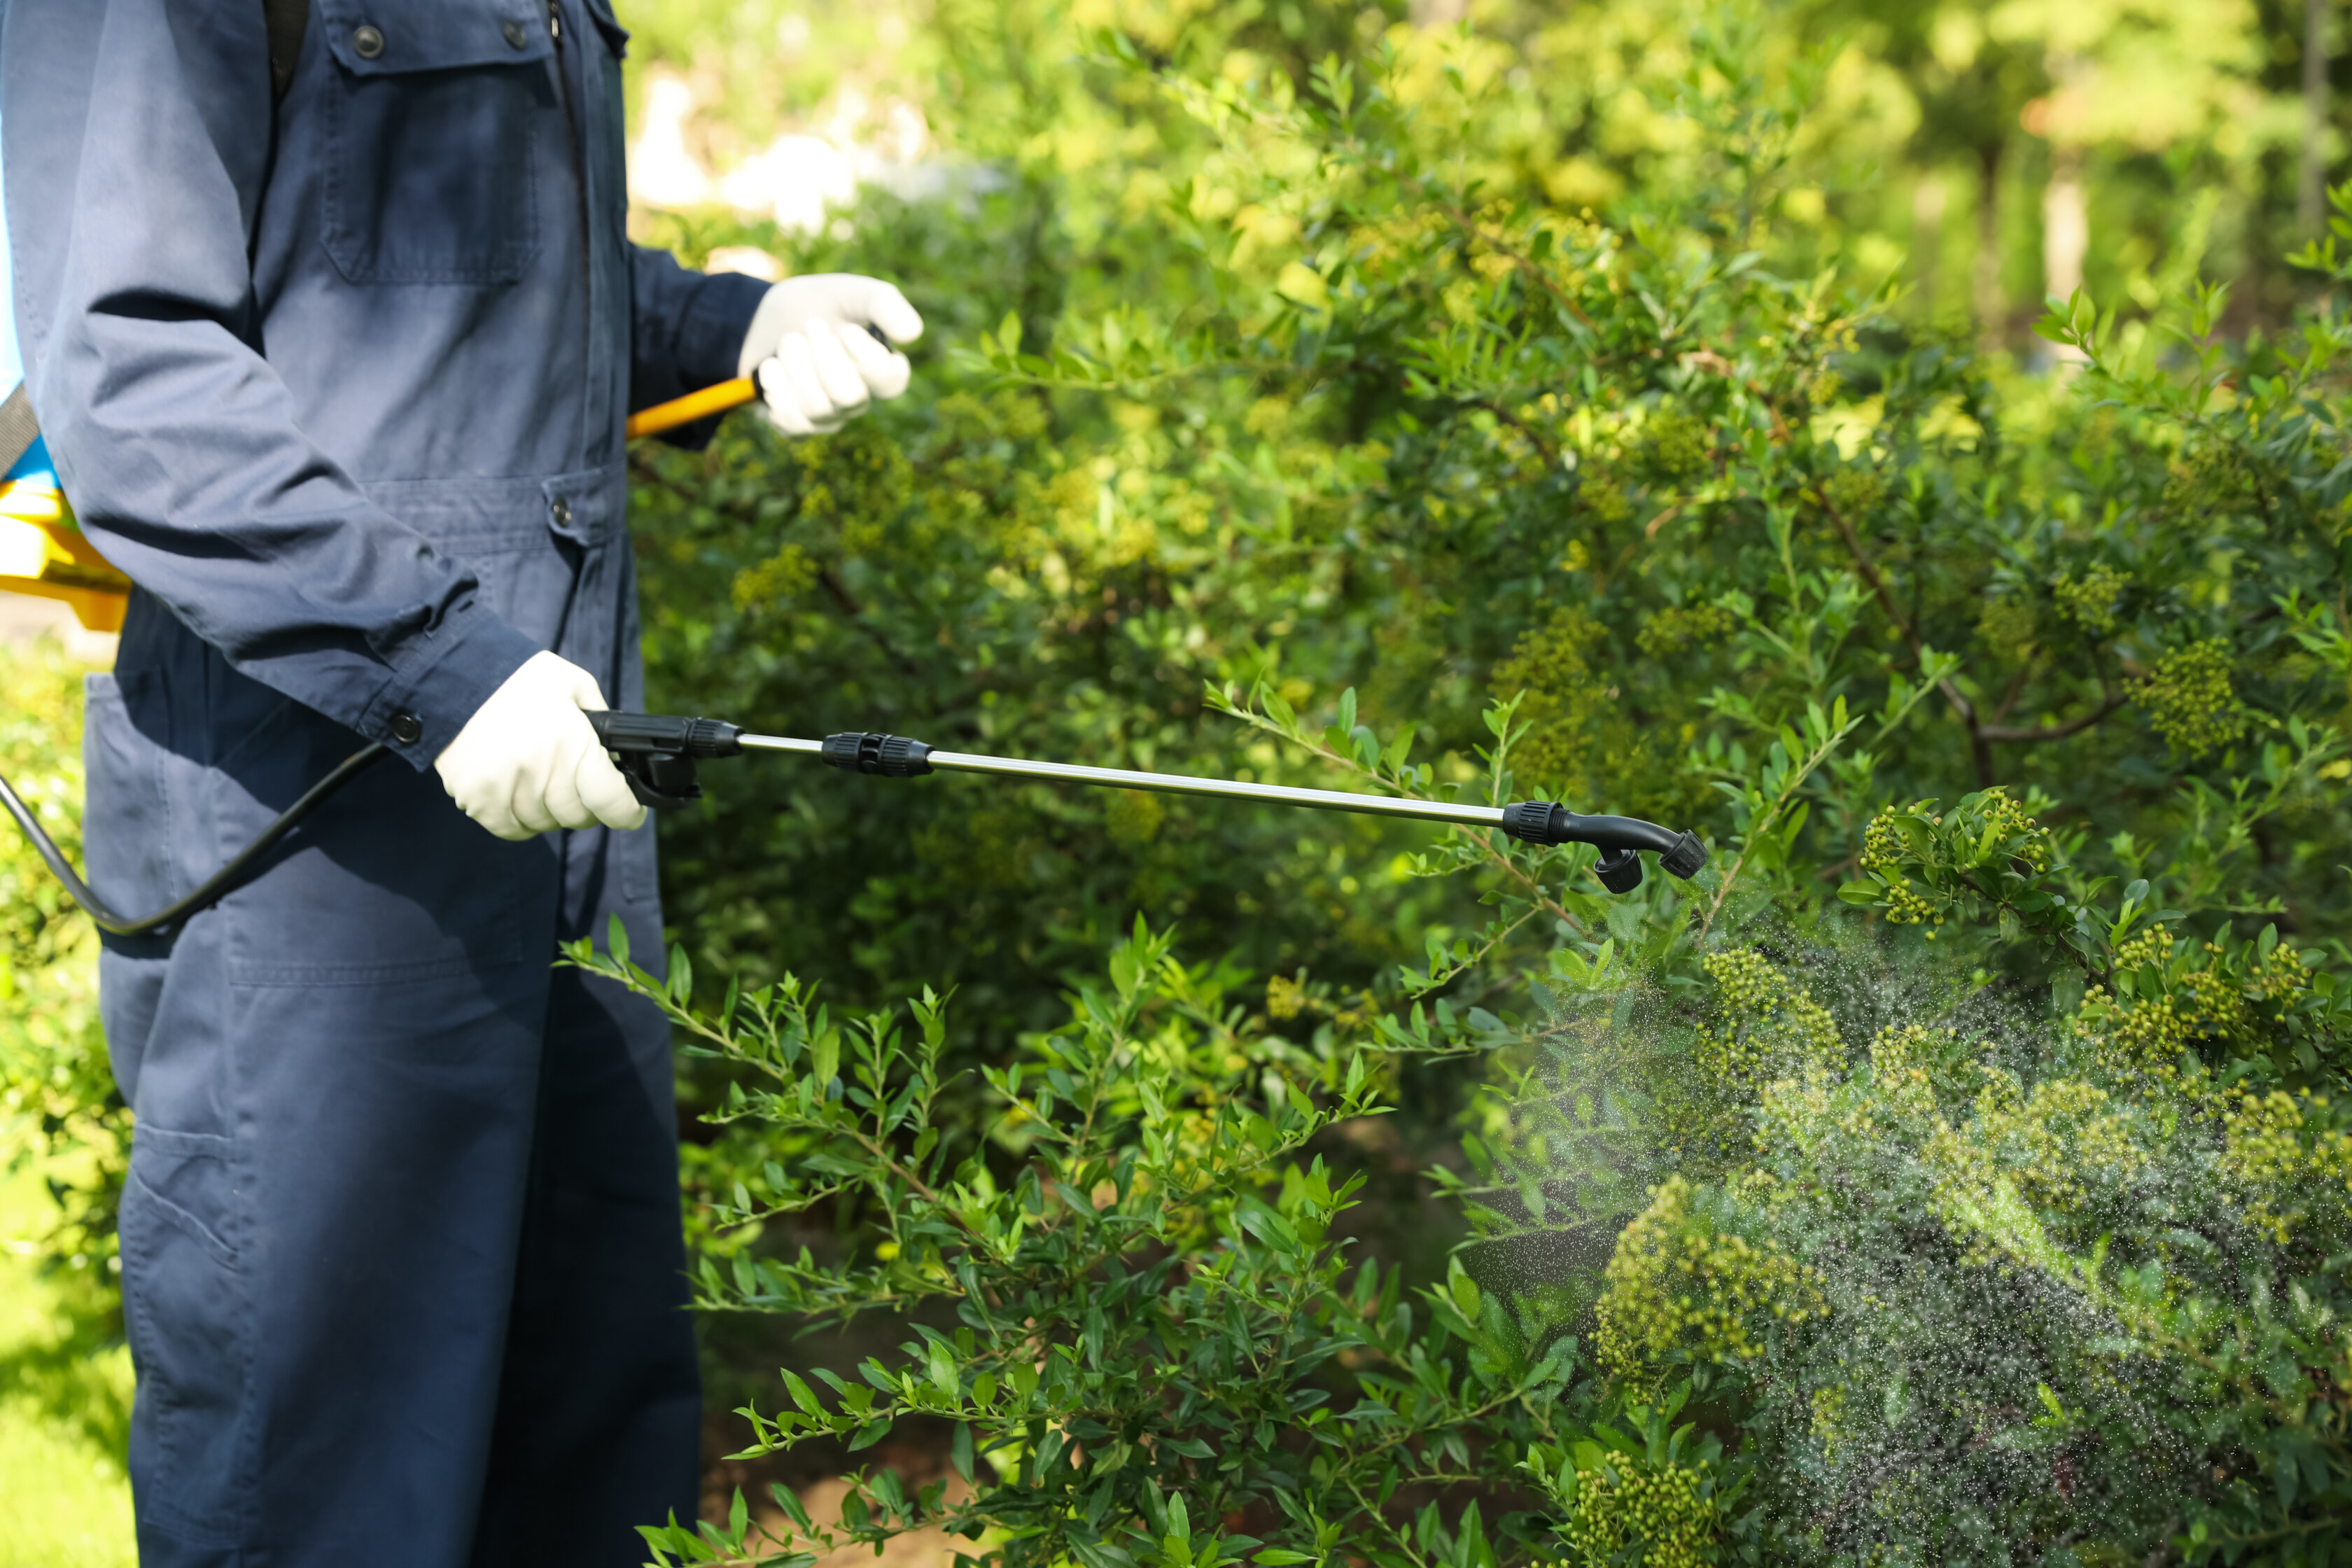 A pest control specialist wearing a navy blue jumpsuit and white protective gloves uses a wand tp spray pest control solution on green shrubs.